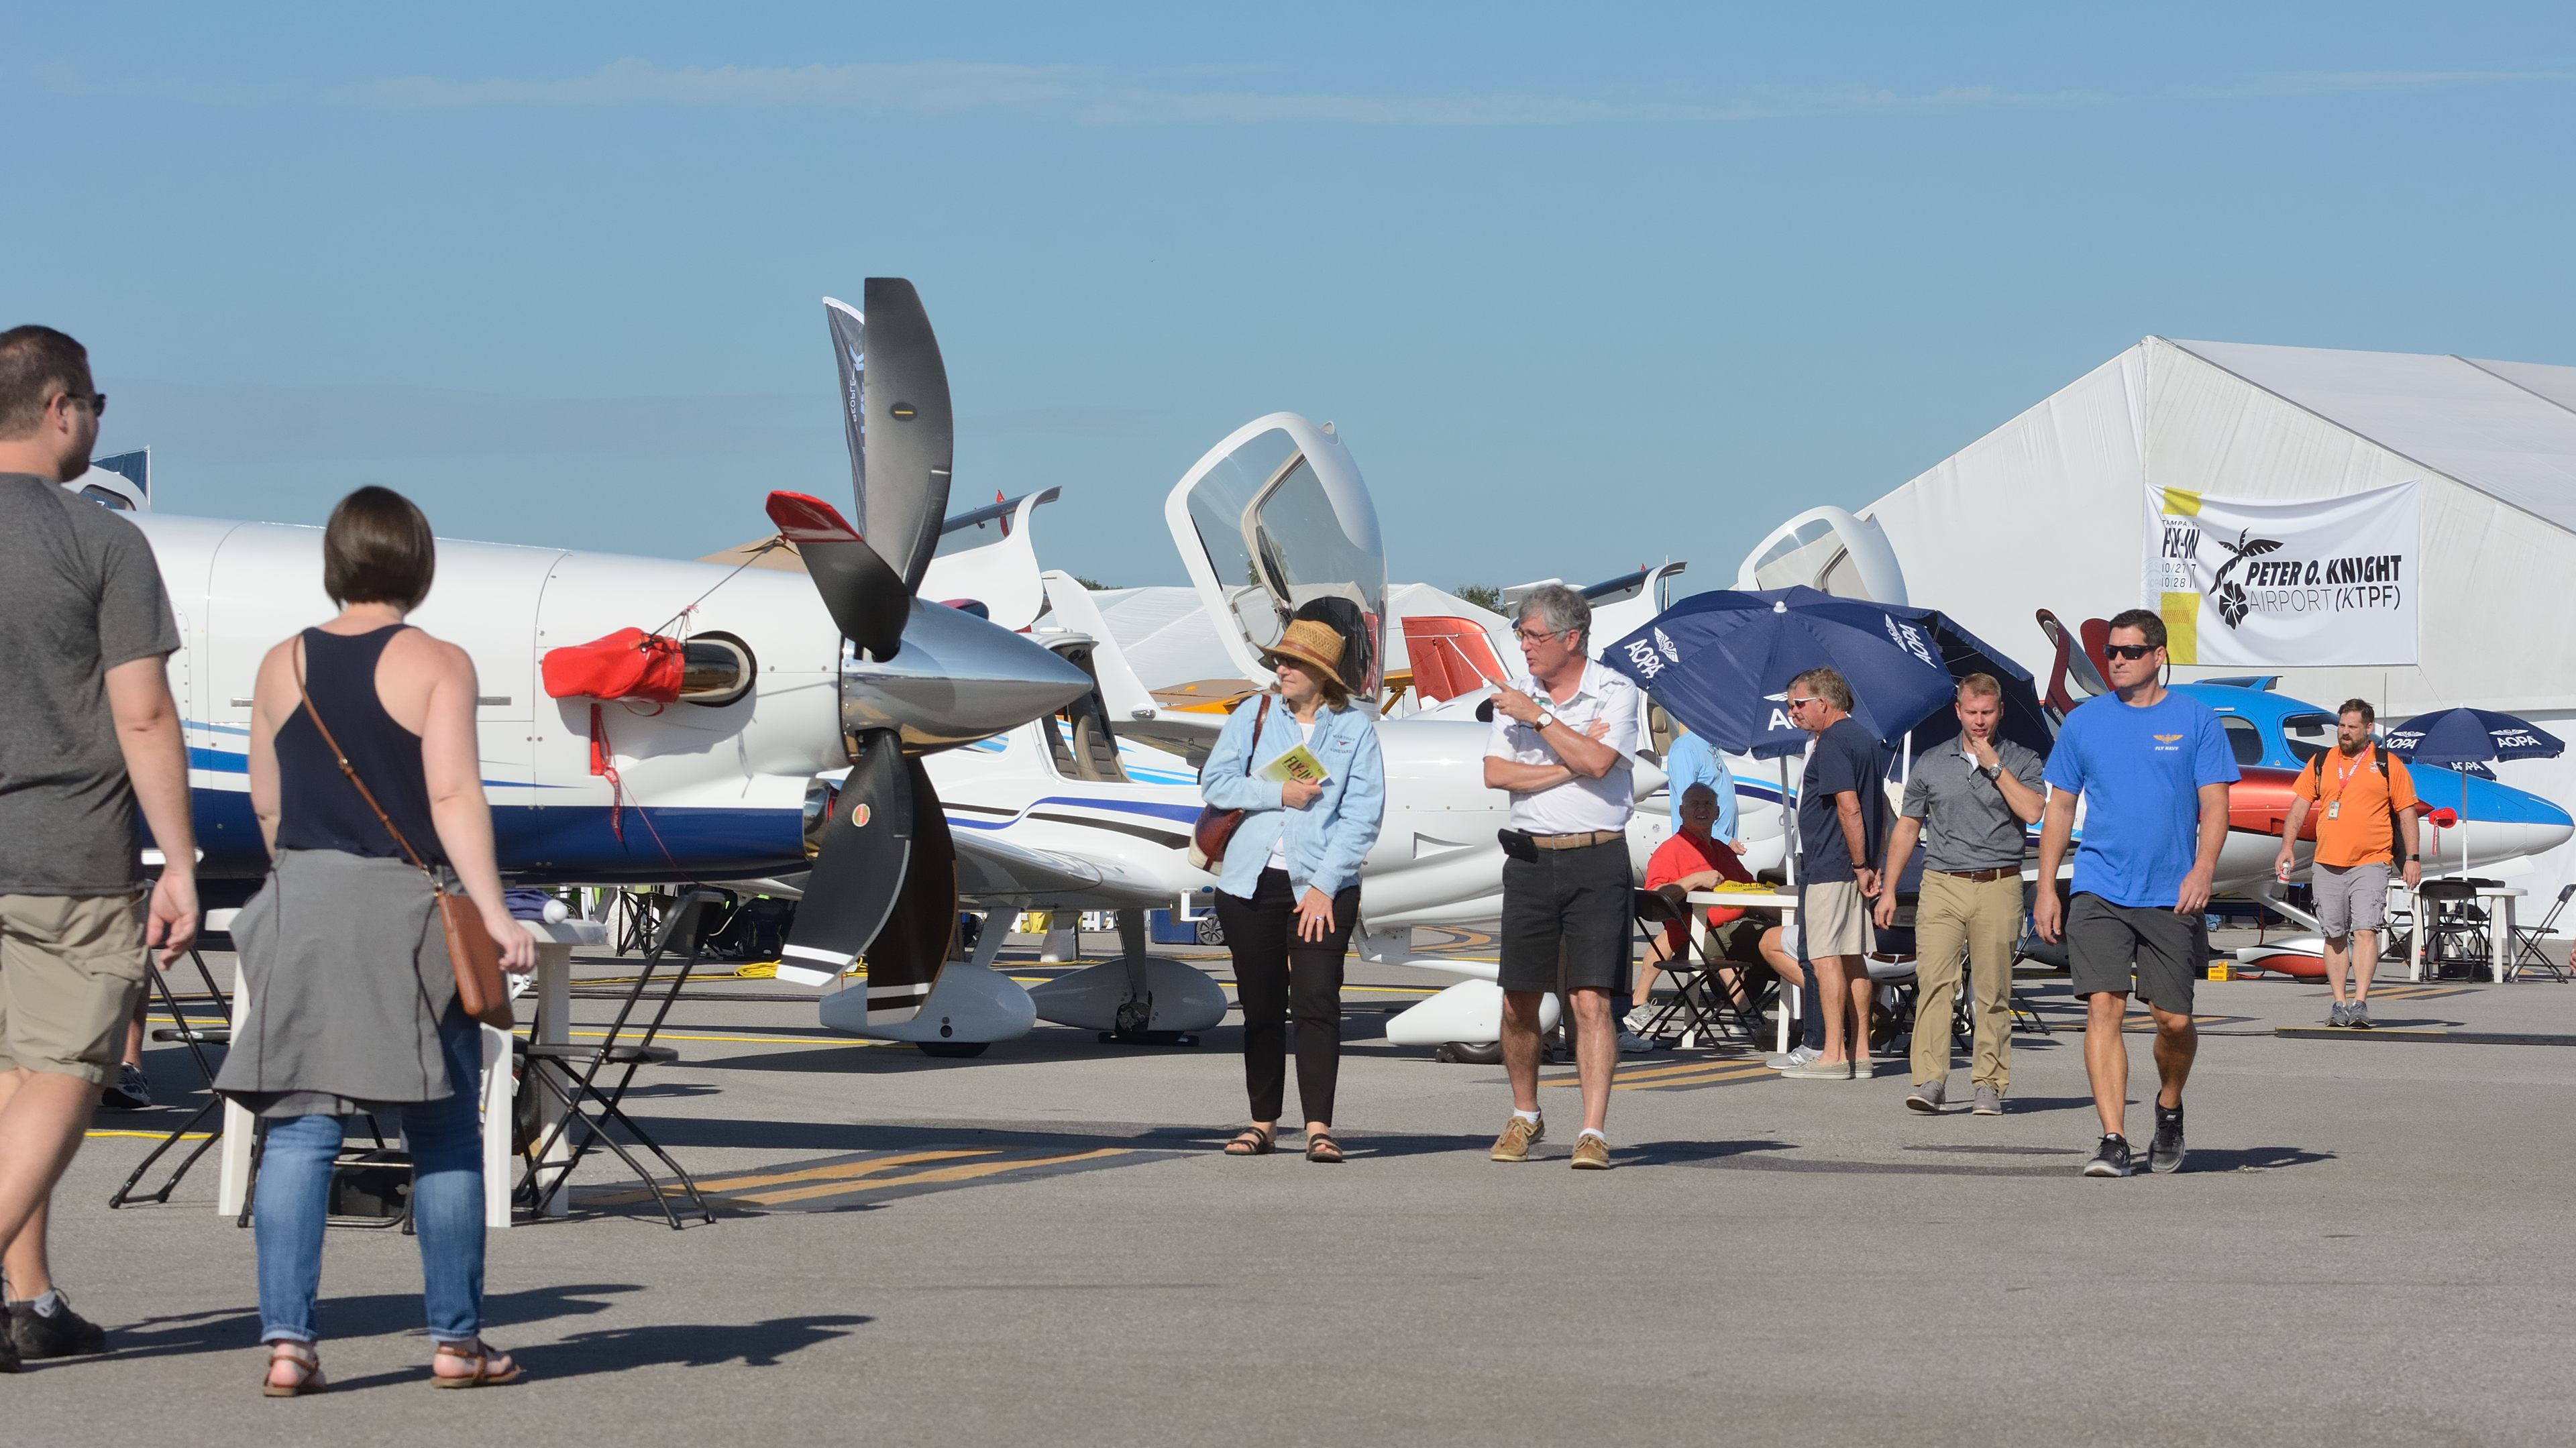 Visitors to AOPA's Tampa Fly-In stroll among the static display aircraft Saturday morning. The event was held at idyllic Peter O. Knight Airport, located on the city's waterfront. Photo by Mike Collins.